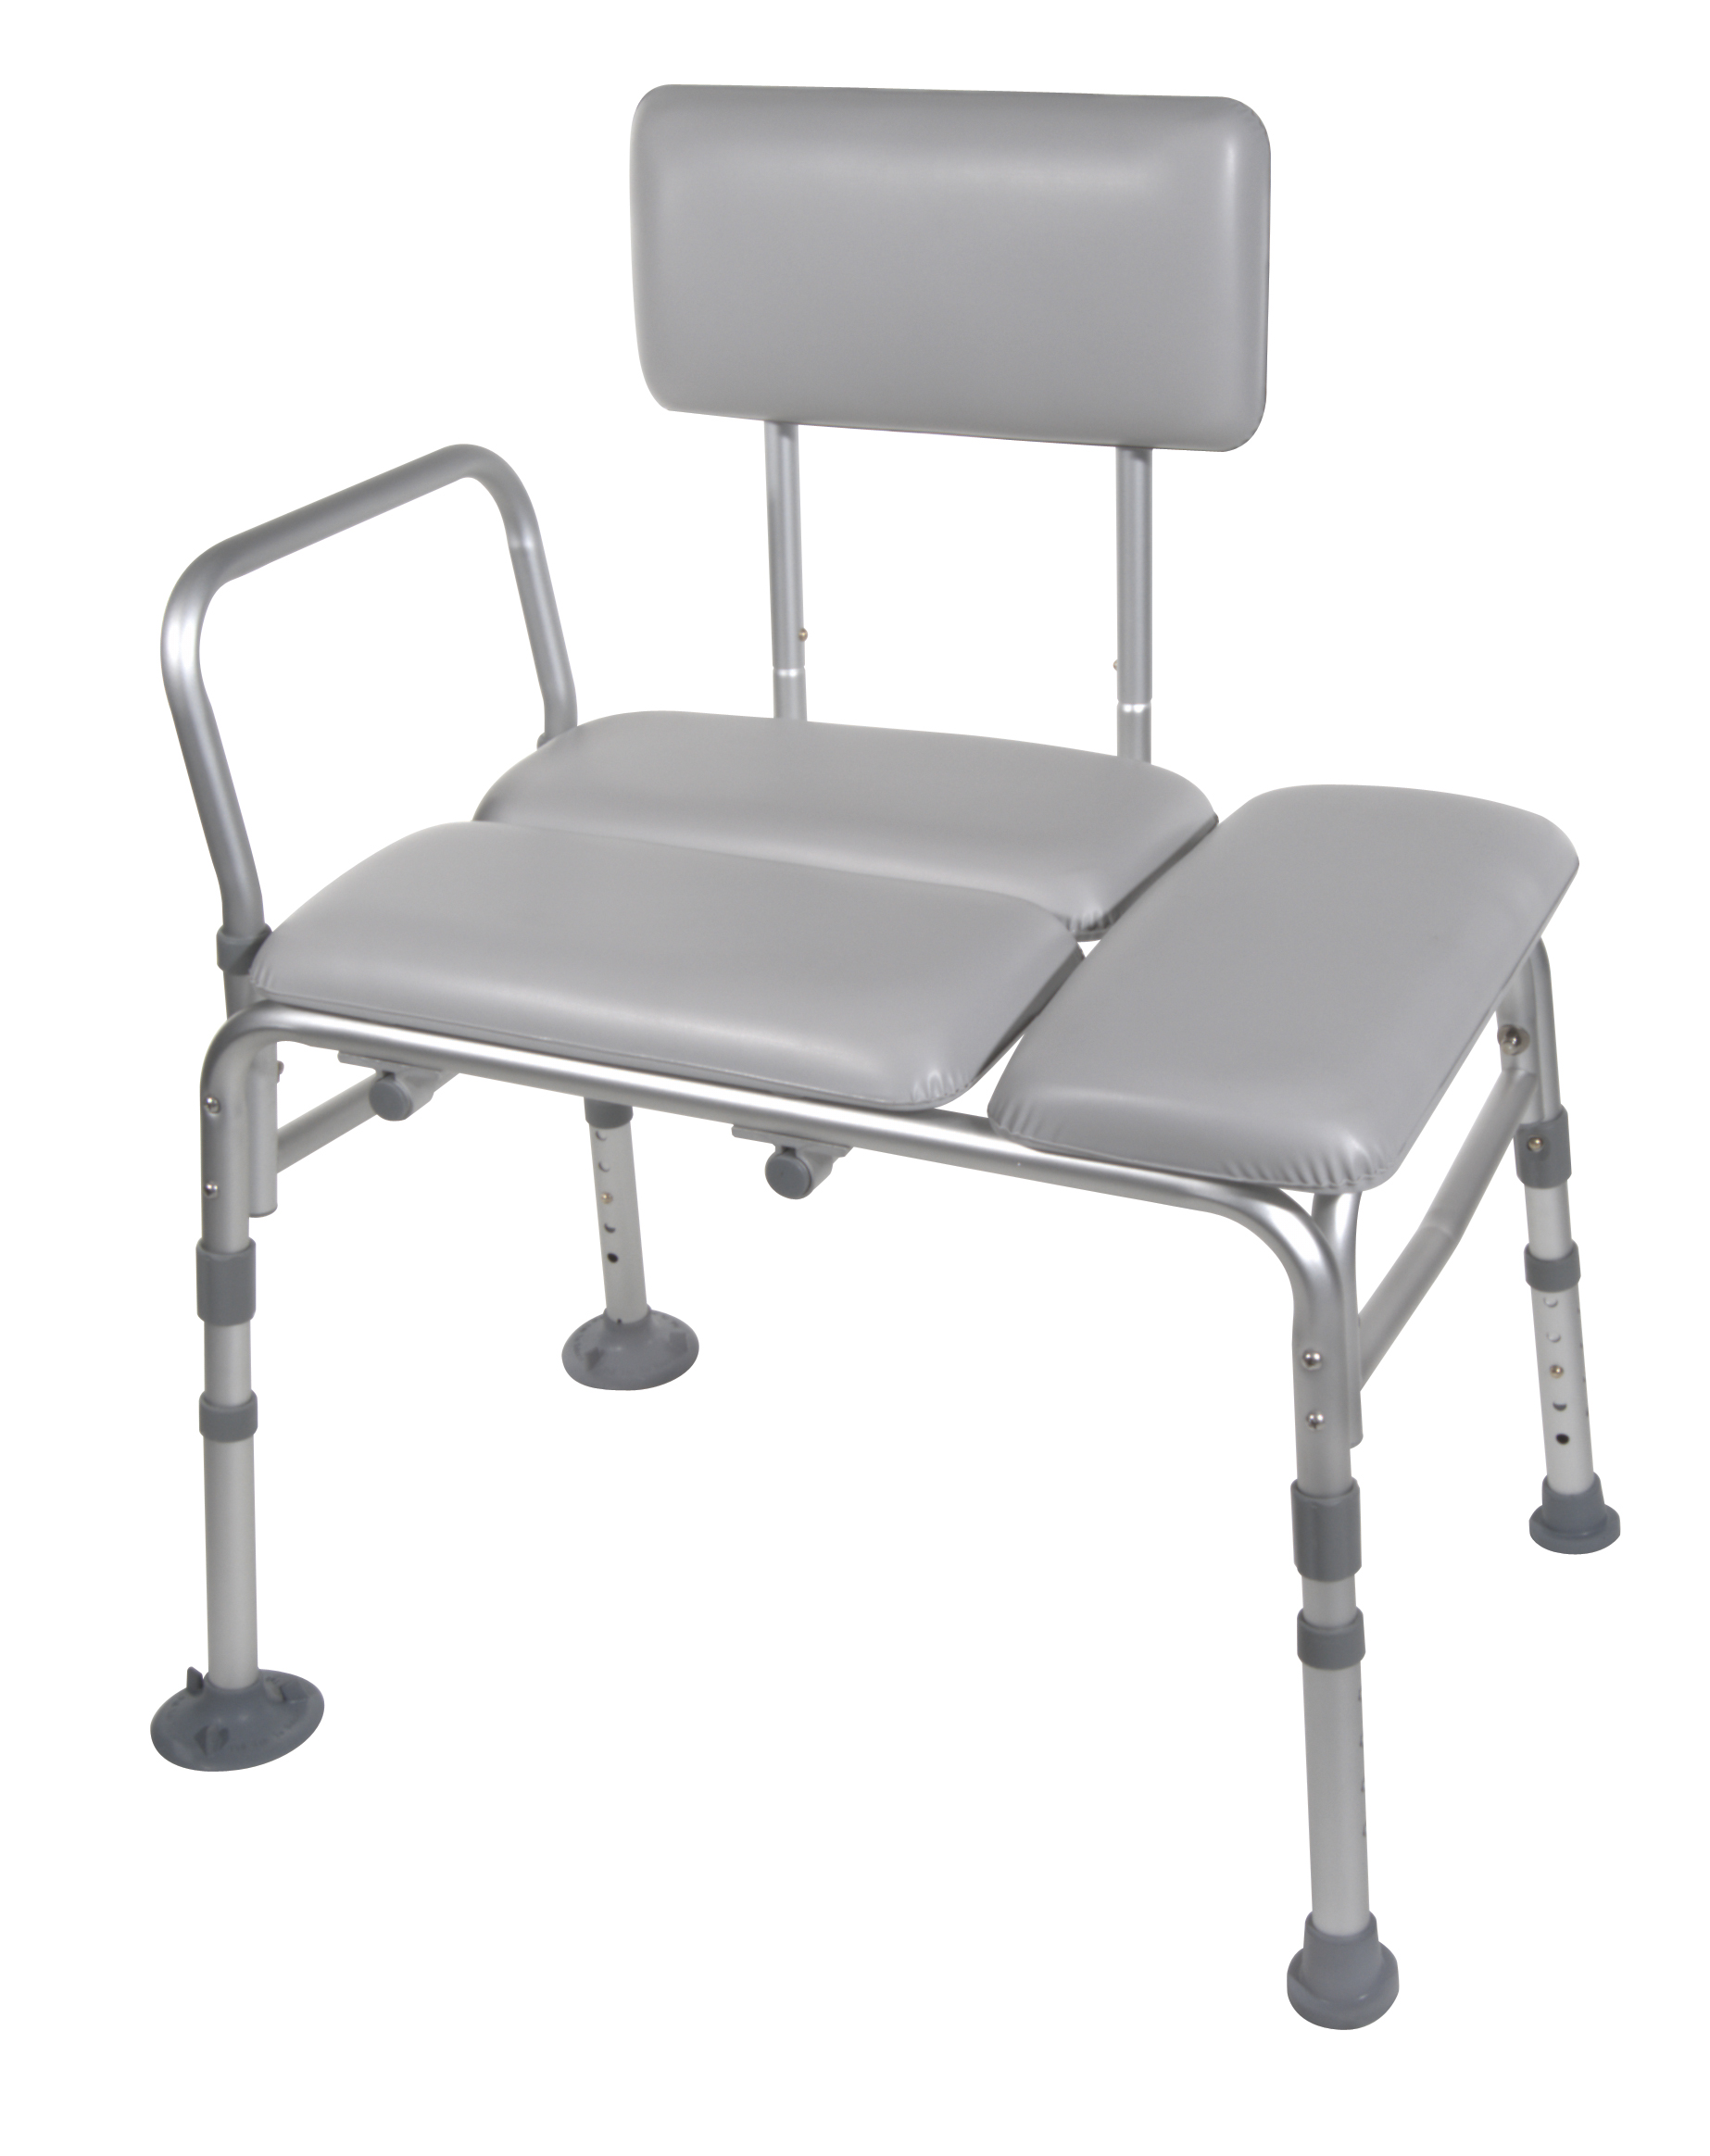 Drive Medical Padded Seat Transfer Bench Walmart